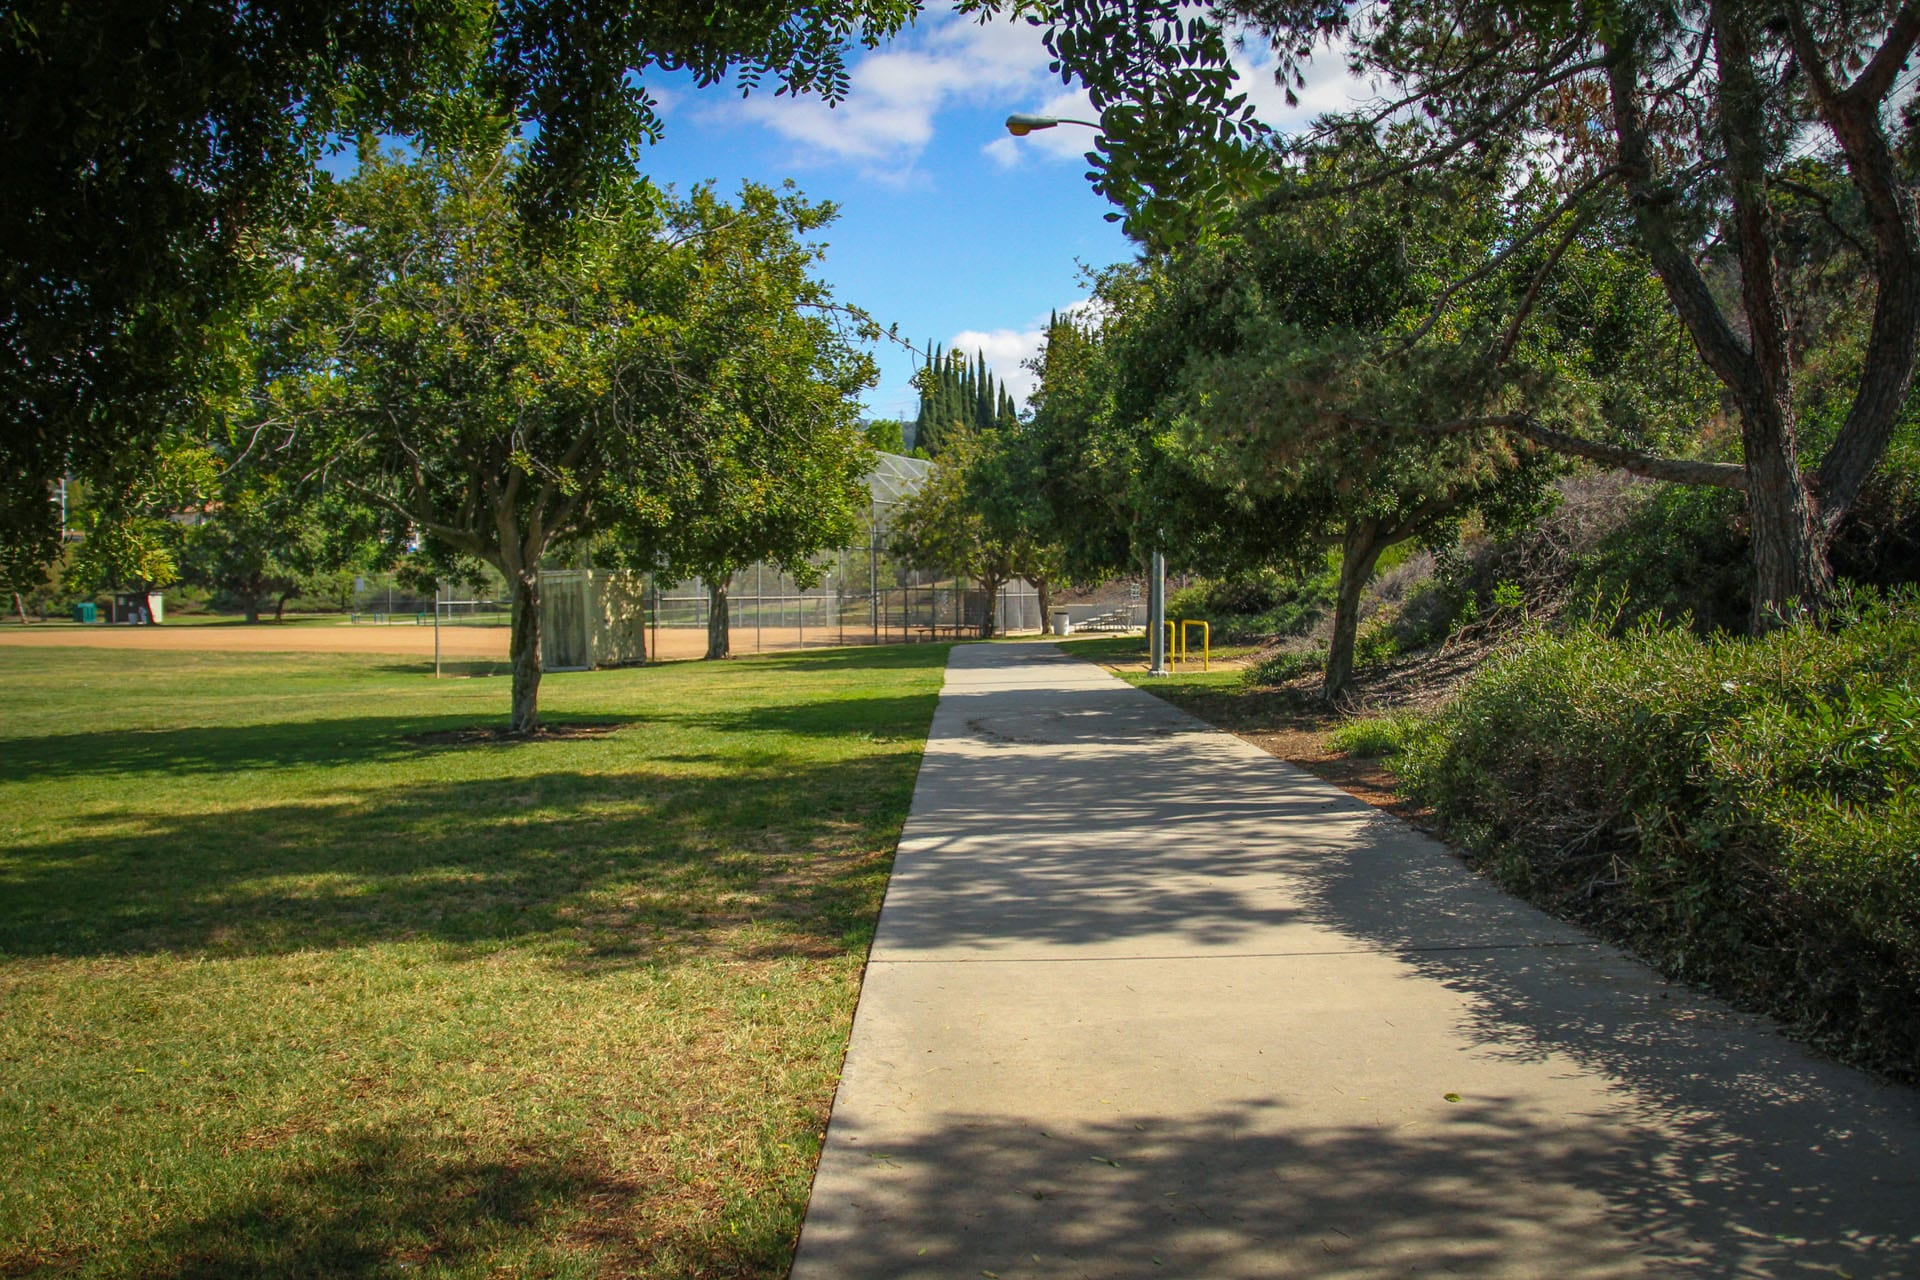 Paved walkway running behind baseball field